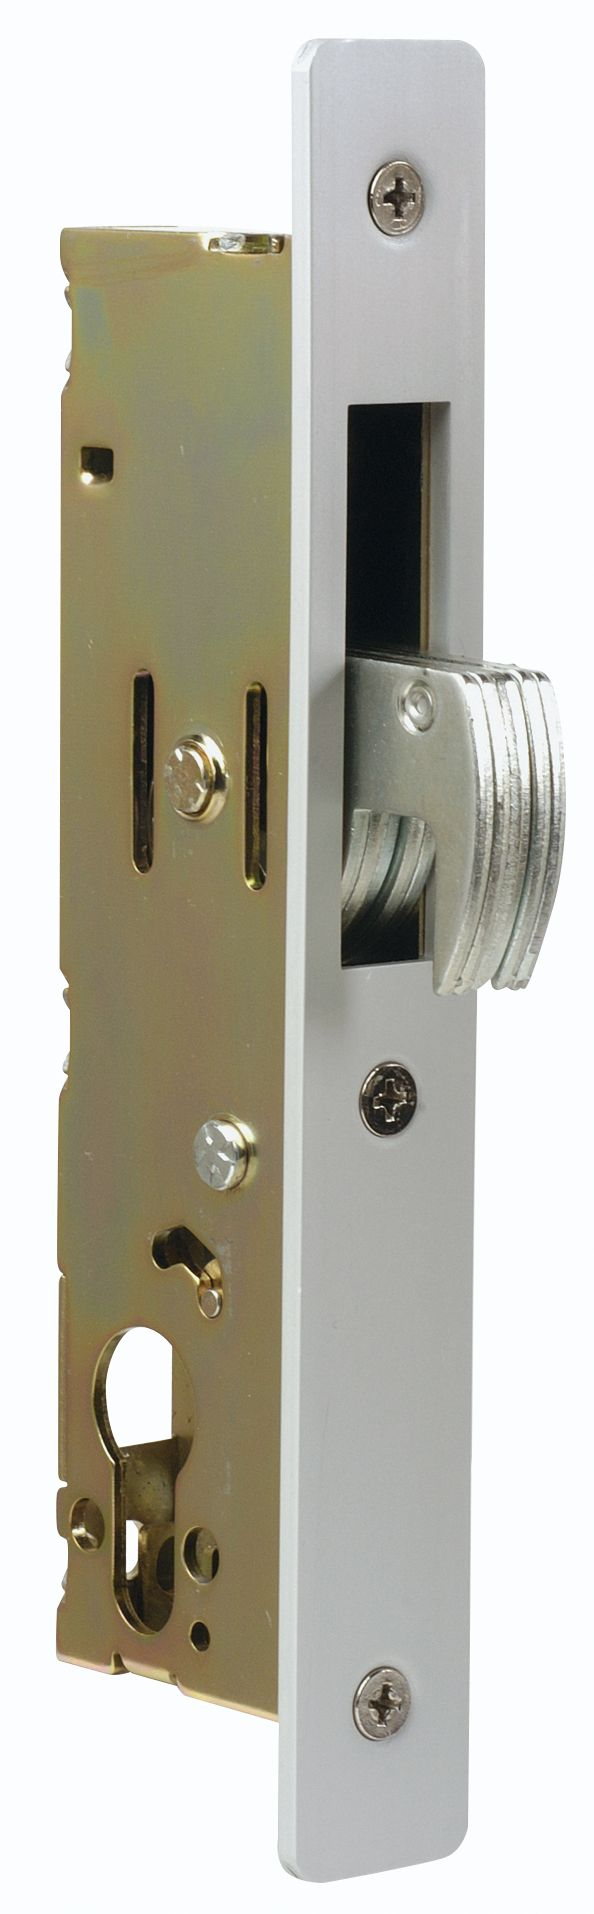 Europrofile deadlocks provide security deadlocking for a variety of aluminium doors including swinging and sliding applications